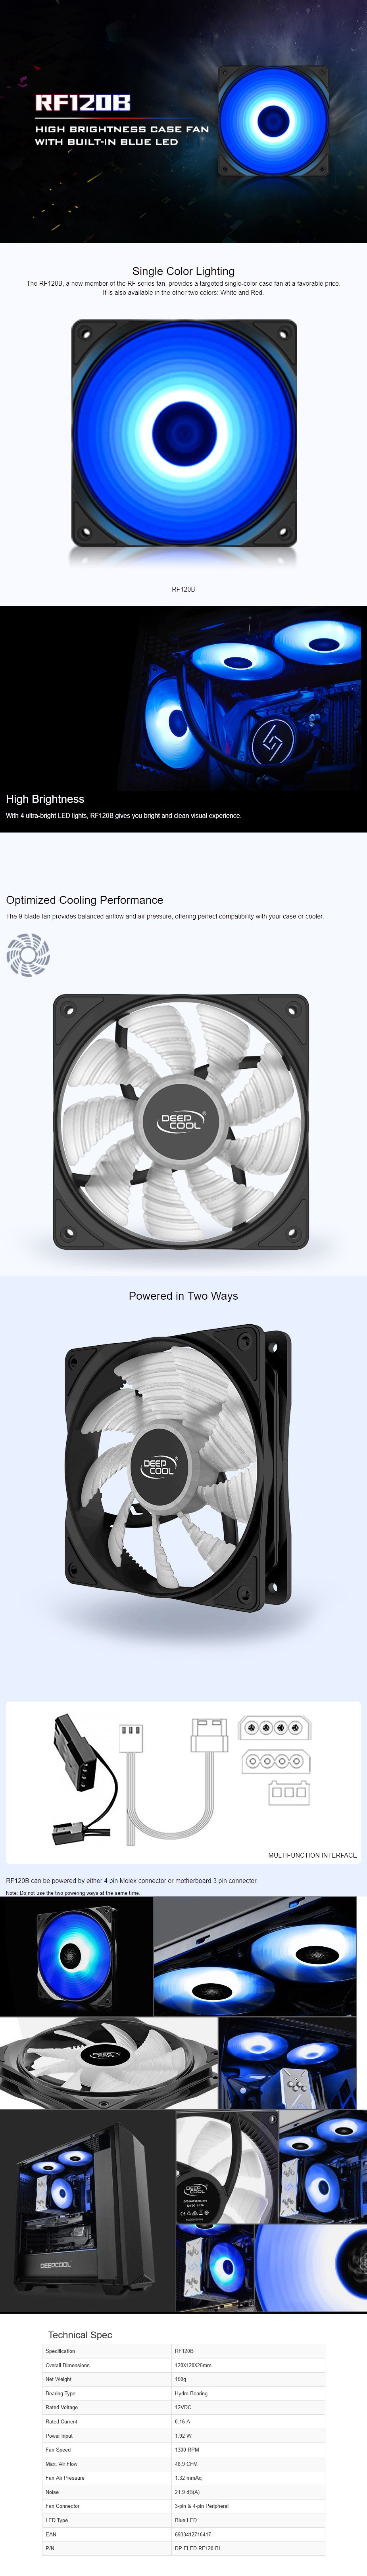 Deepcool RF120B 120mm High Brightness LED Fan - Blue - Overview 1